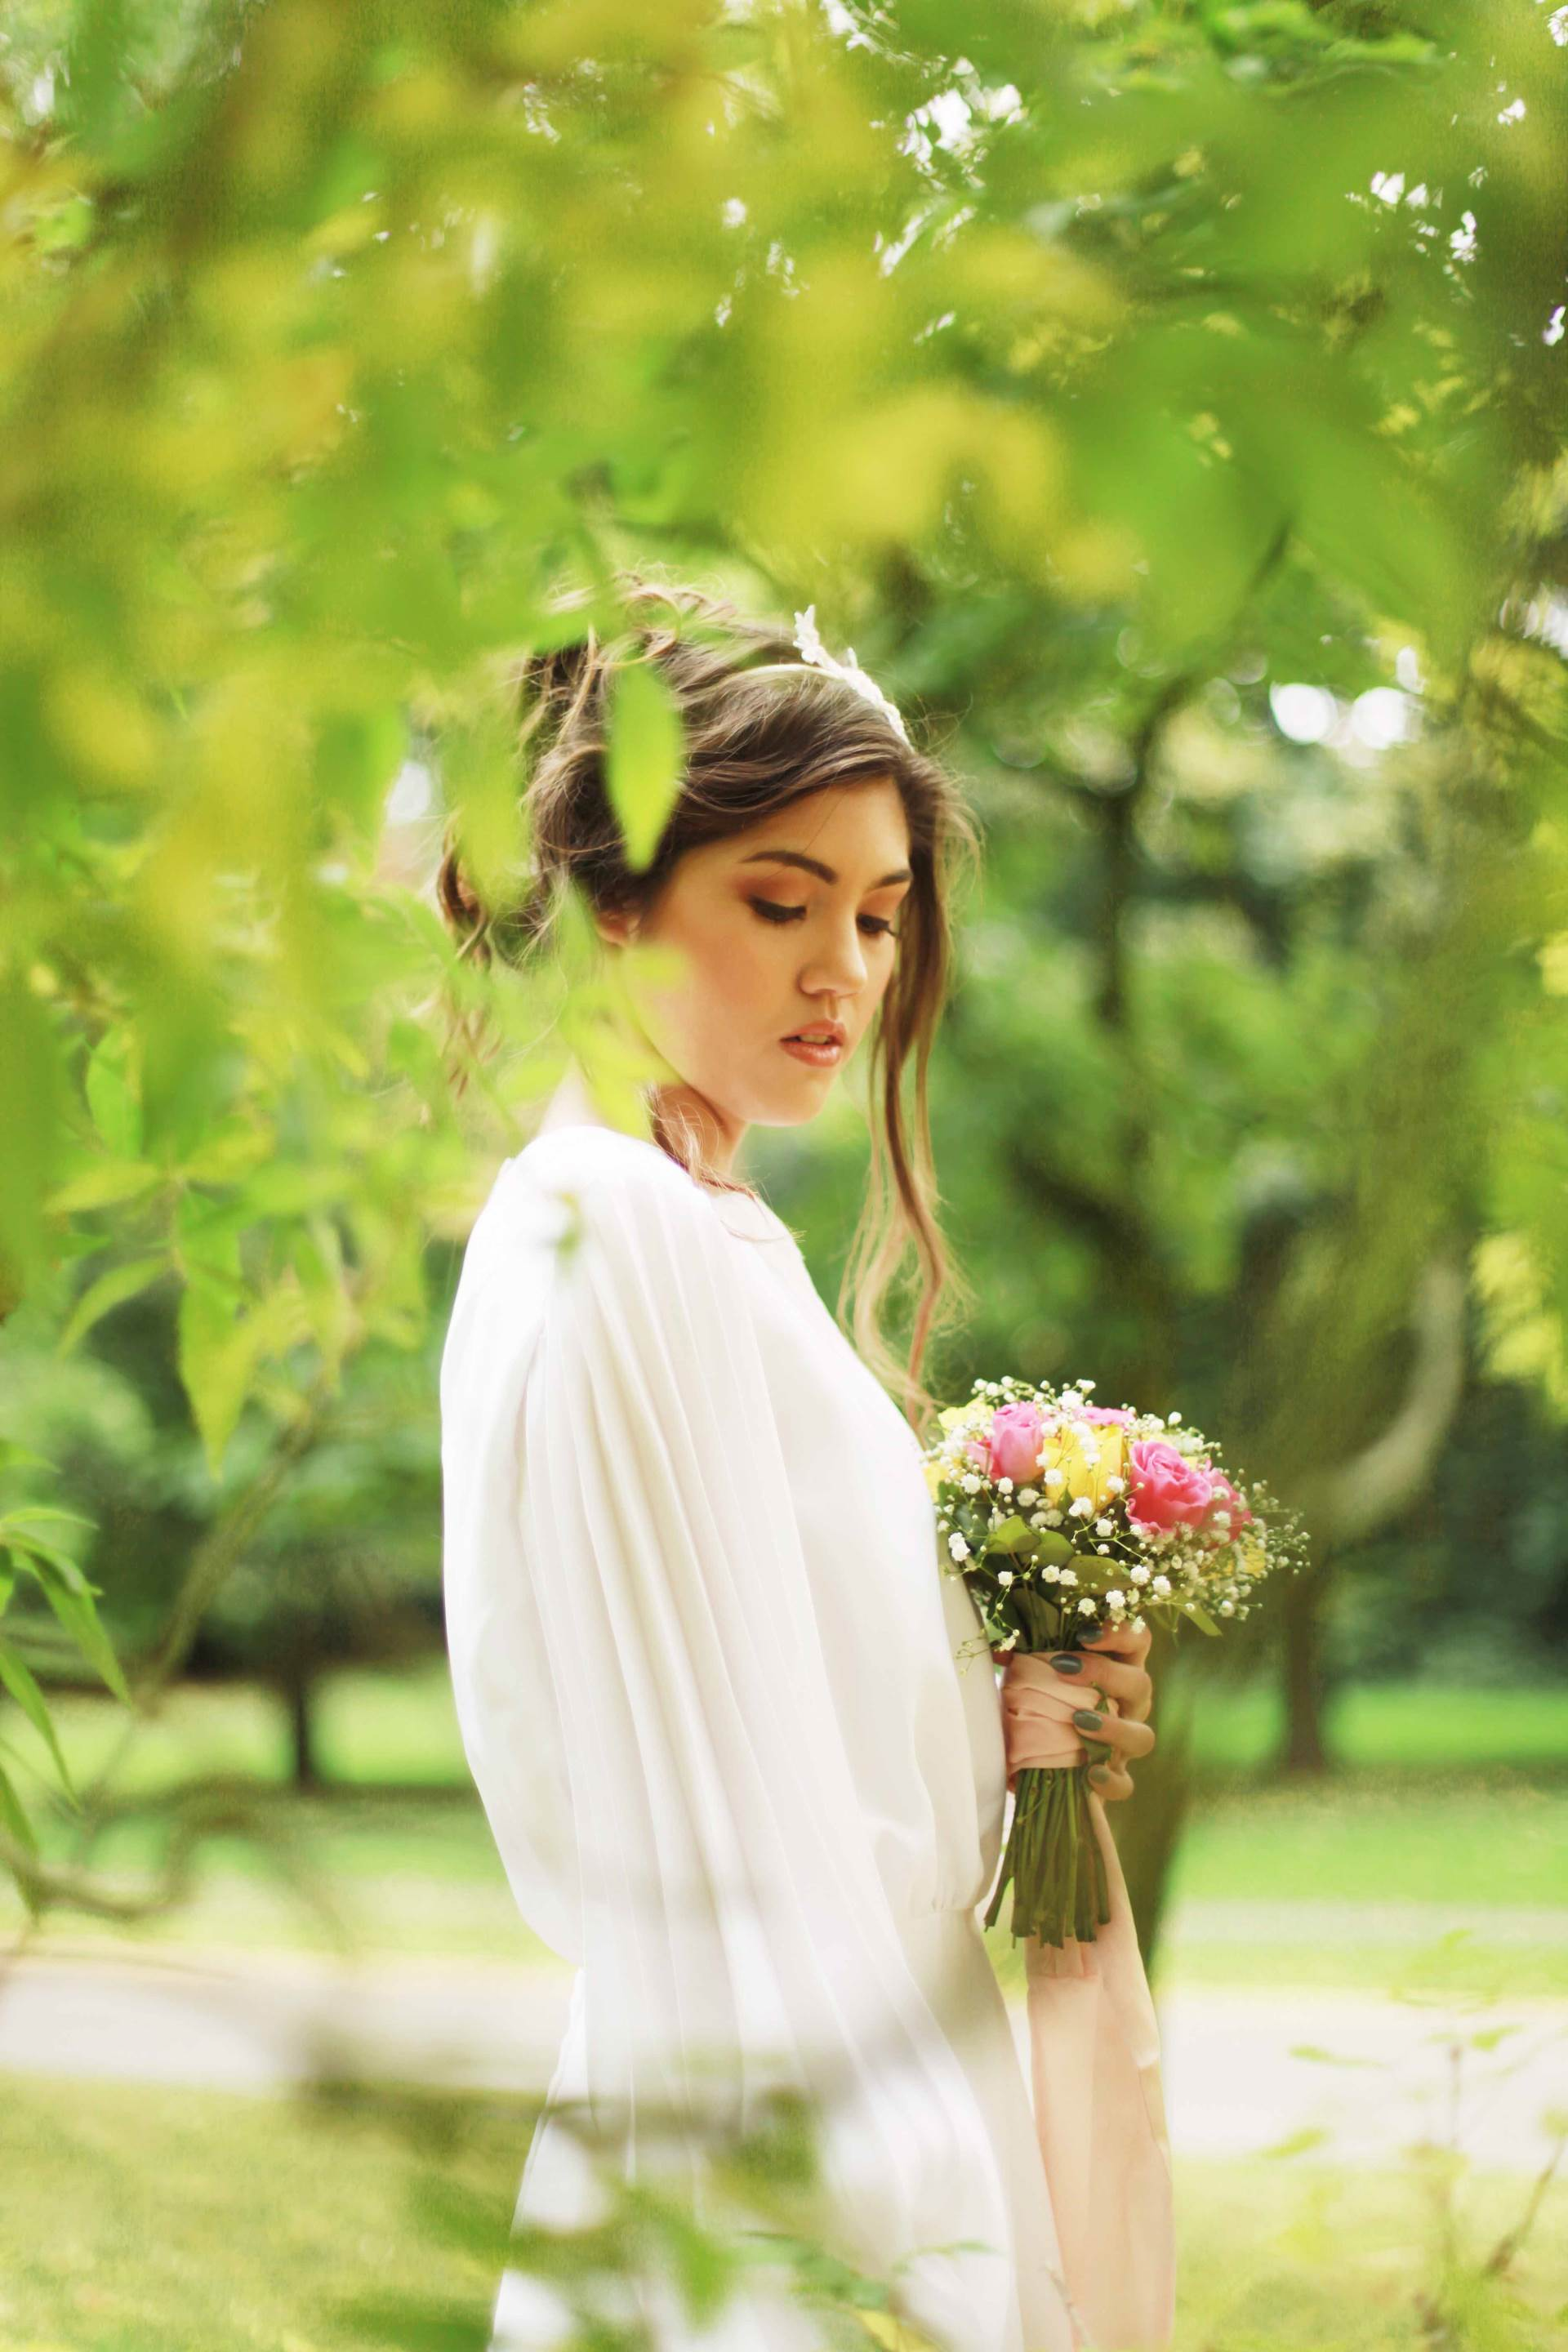 Autumn Styled Wedding Shoot by Nina Pang with vintage wedding dresses as featured on The National Vintage Wedding Fair blog